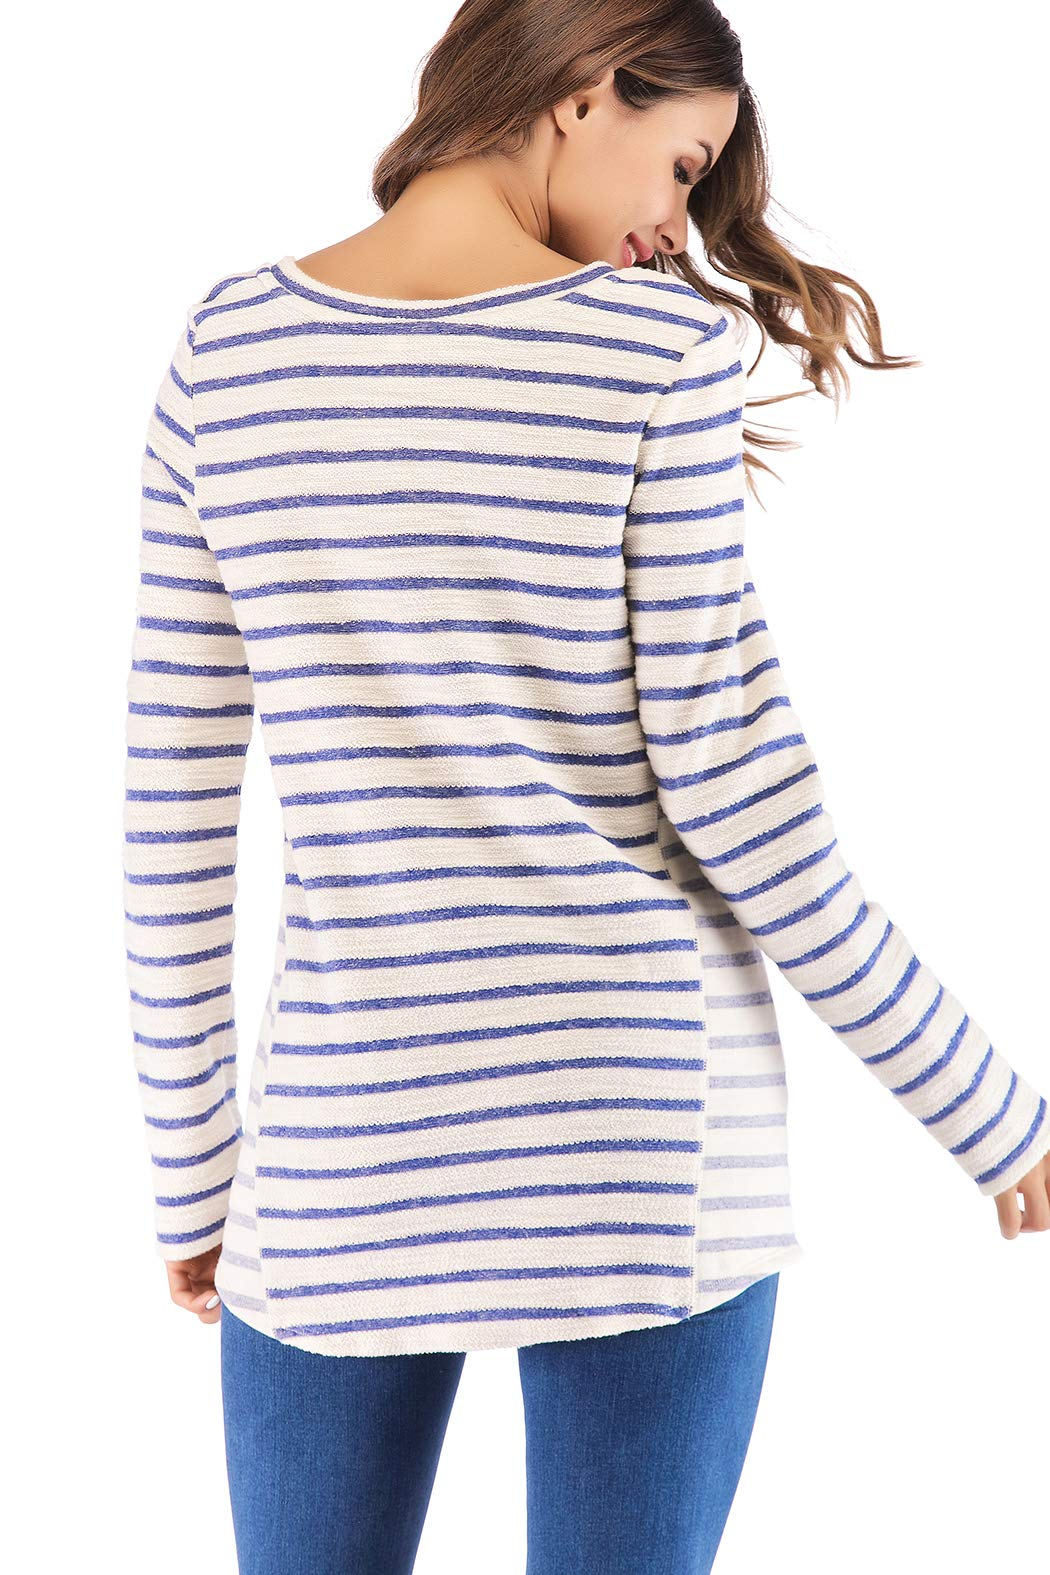 Eanklosco Long Sleeve Striped Shirt Women Casual Gray/Blue White Stripe T-Shirt Loose Round Neck Tunic Tops (Blue+White, S)